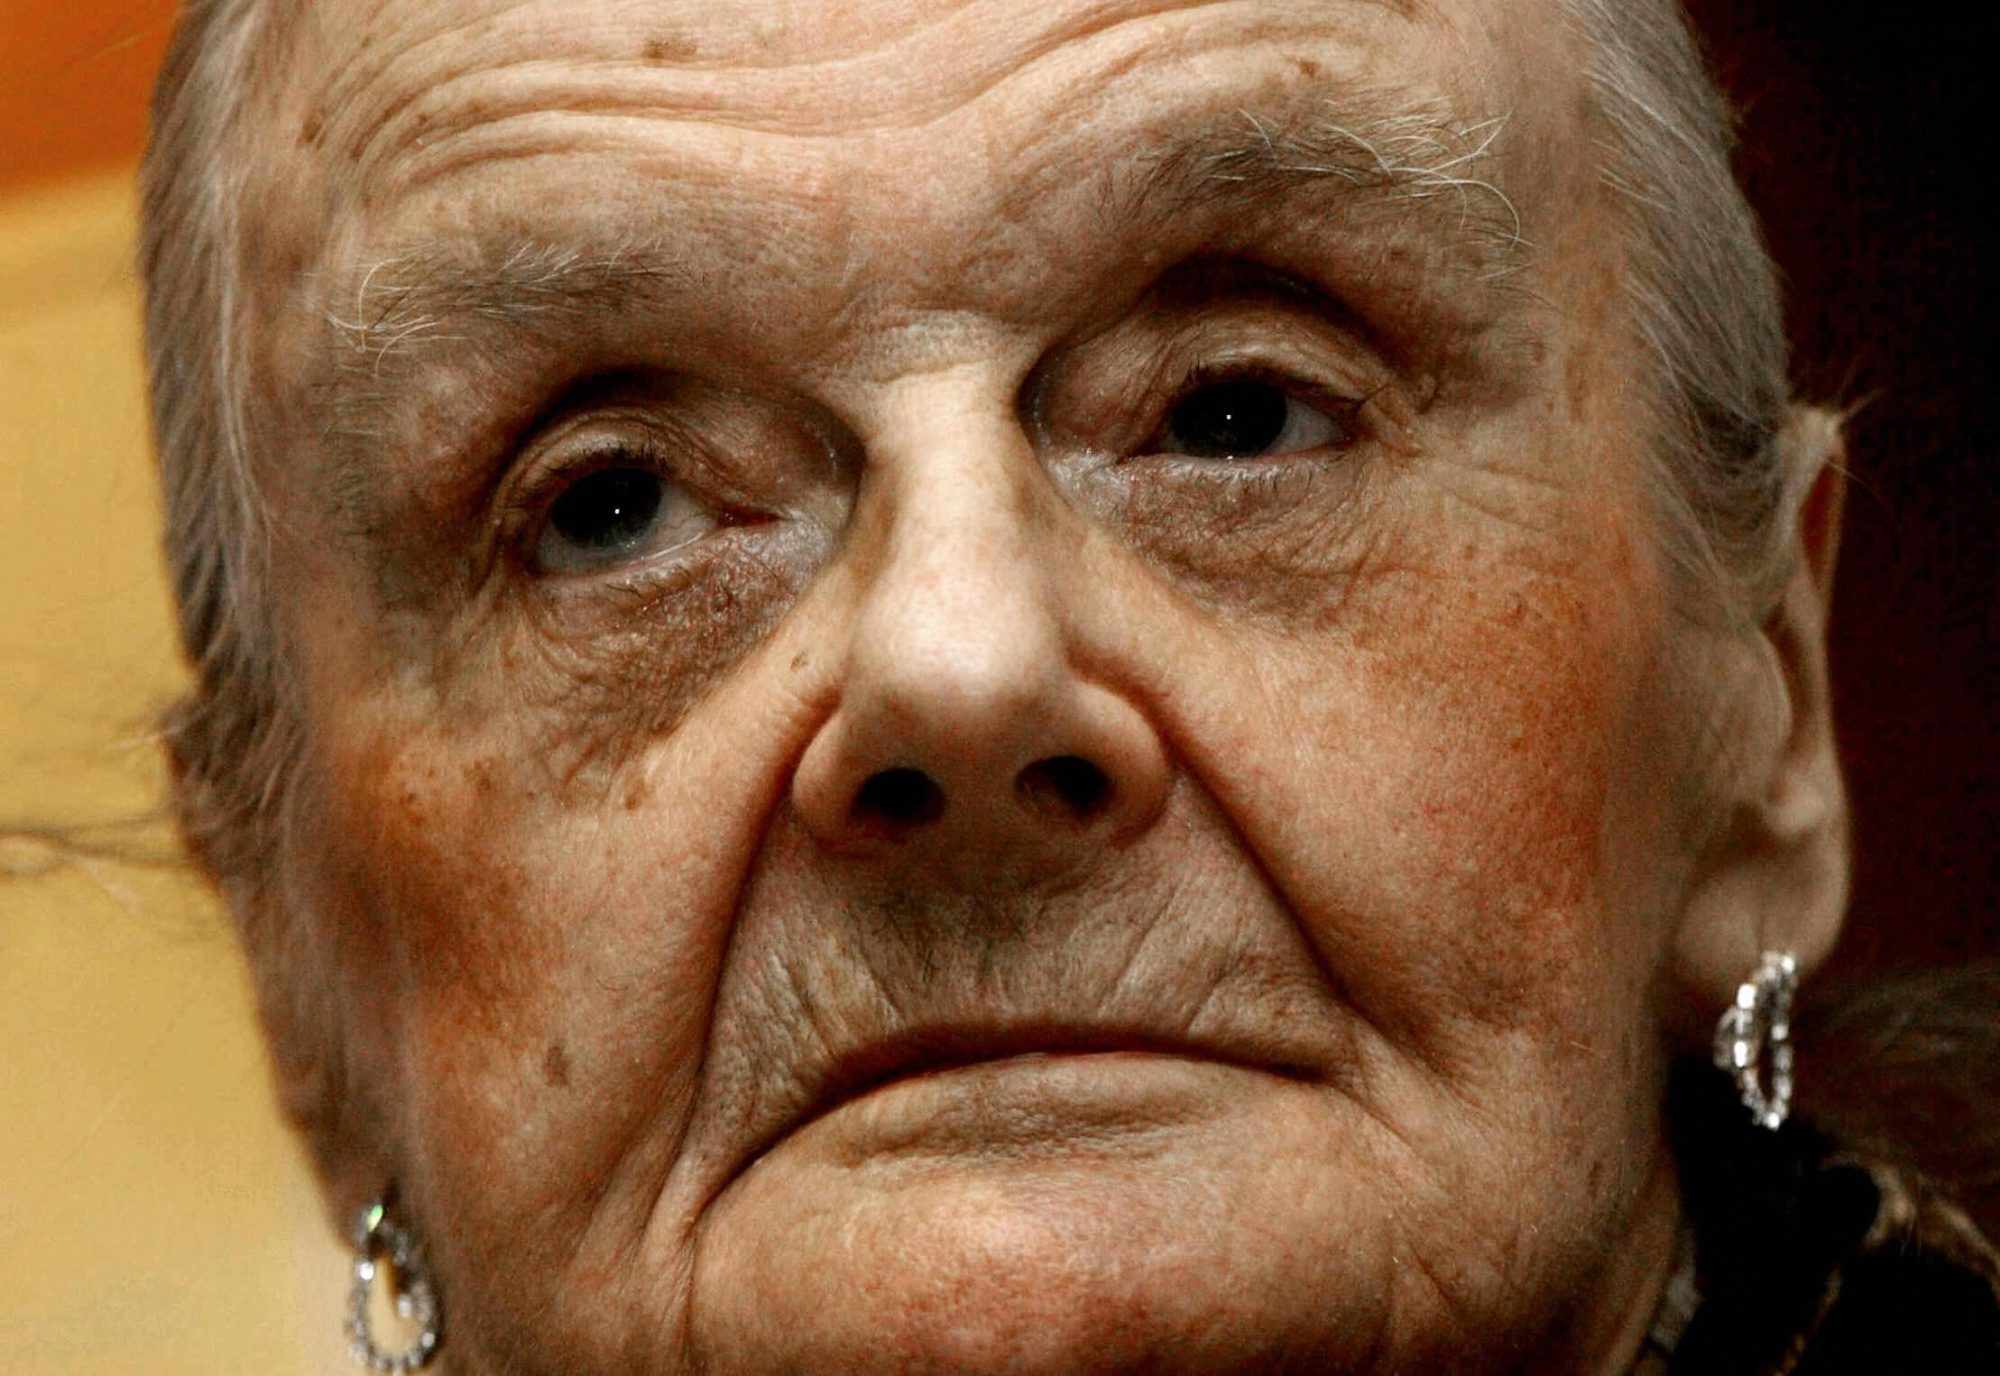 Clare Hollingworth, a 92-year-old former